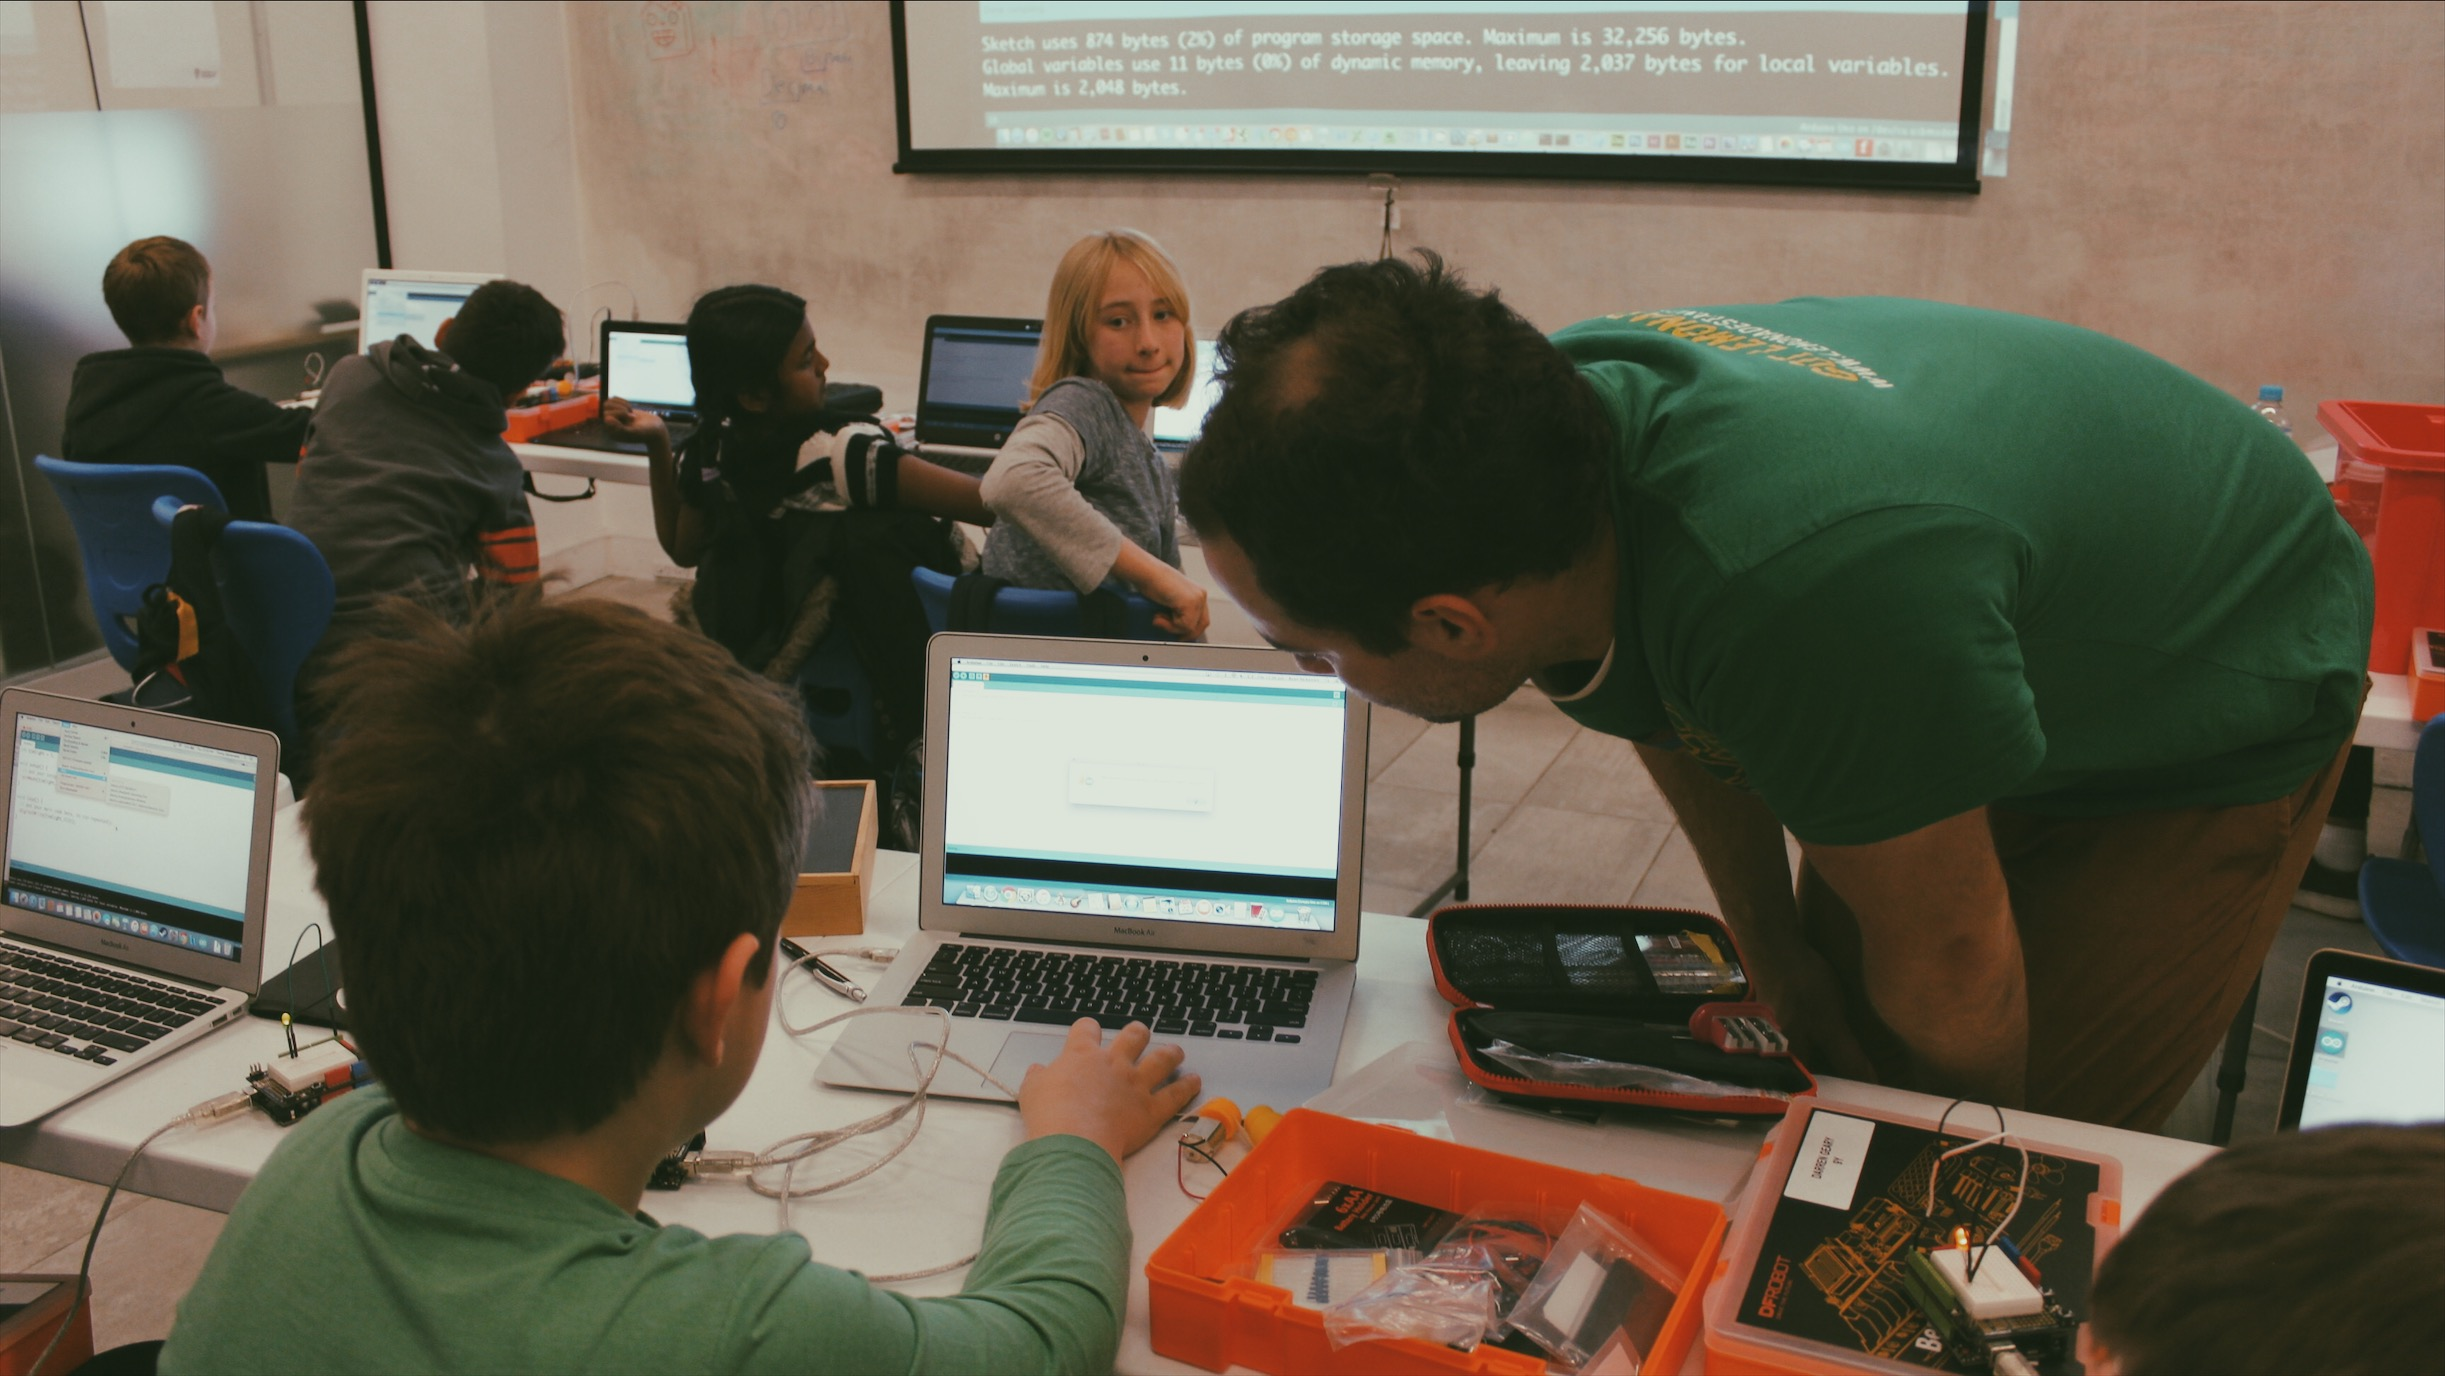 Lemonade Stand Kids Coding: a facilitator teaches a boy how to code